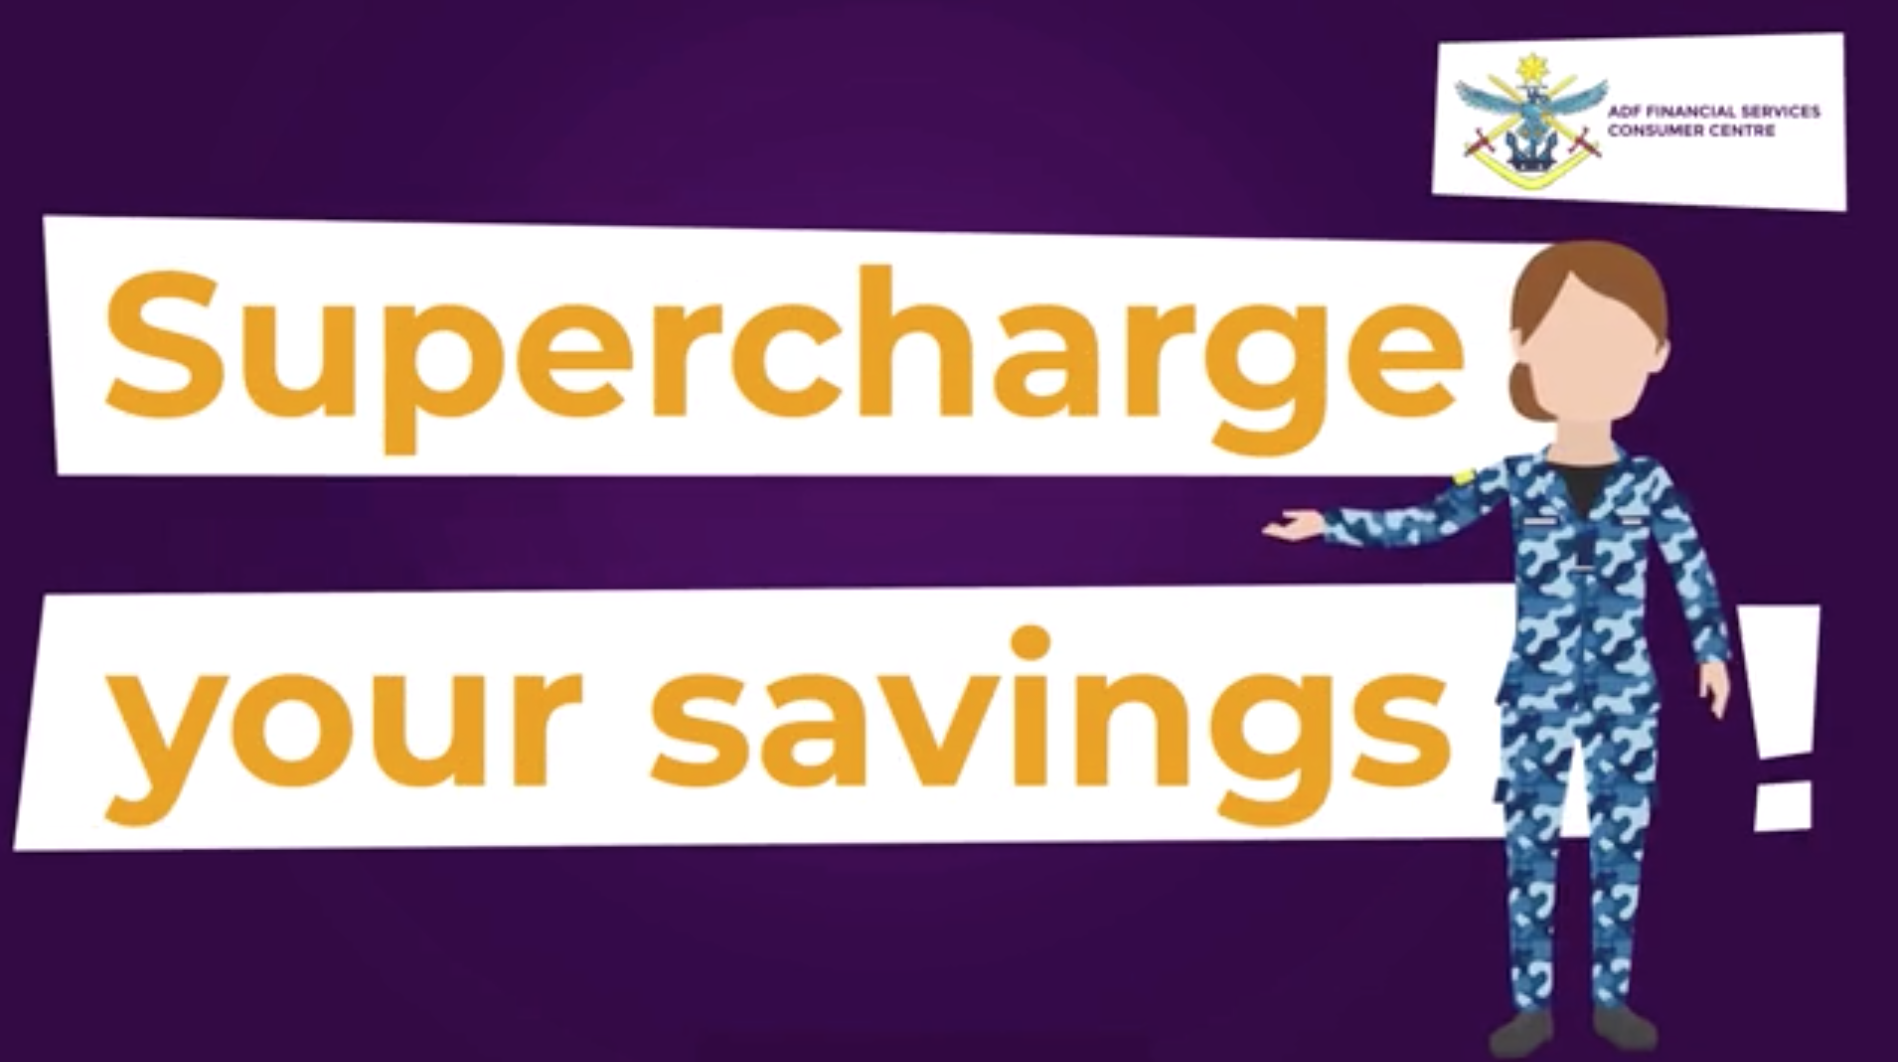 Supercharge your savings